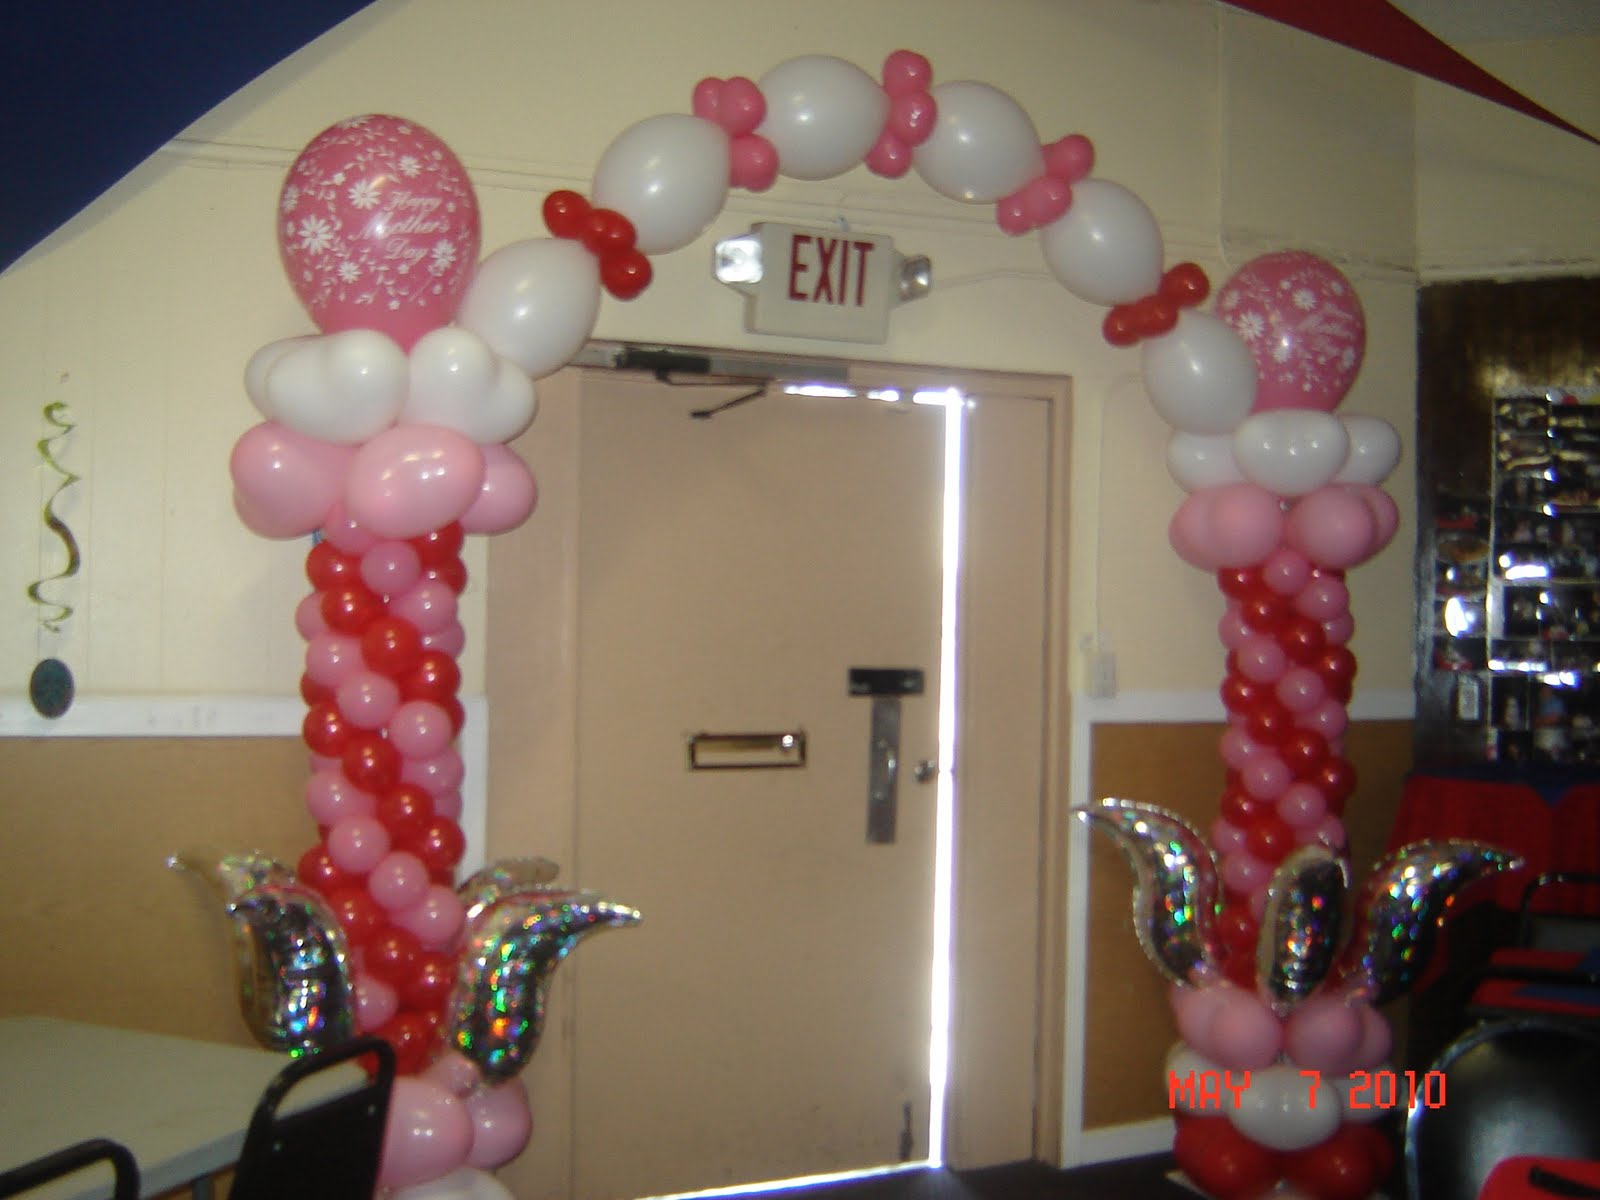 Craft pastry decoraci n con globos for Decoracion con globos